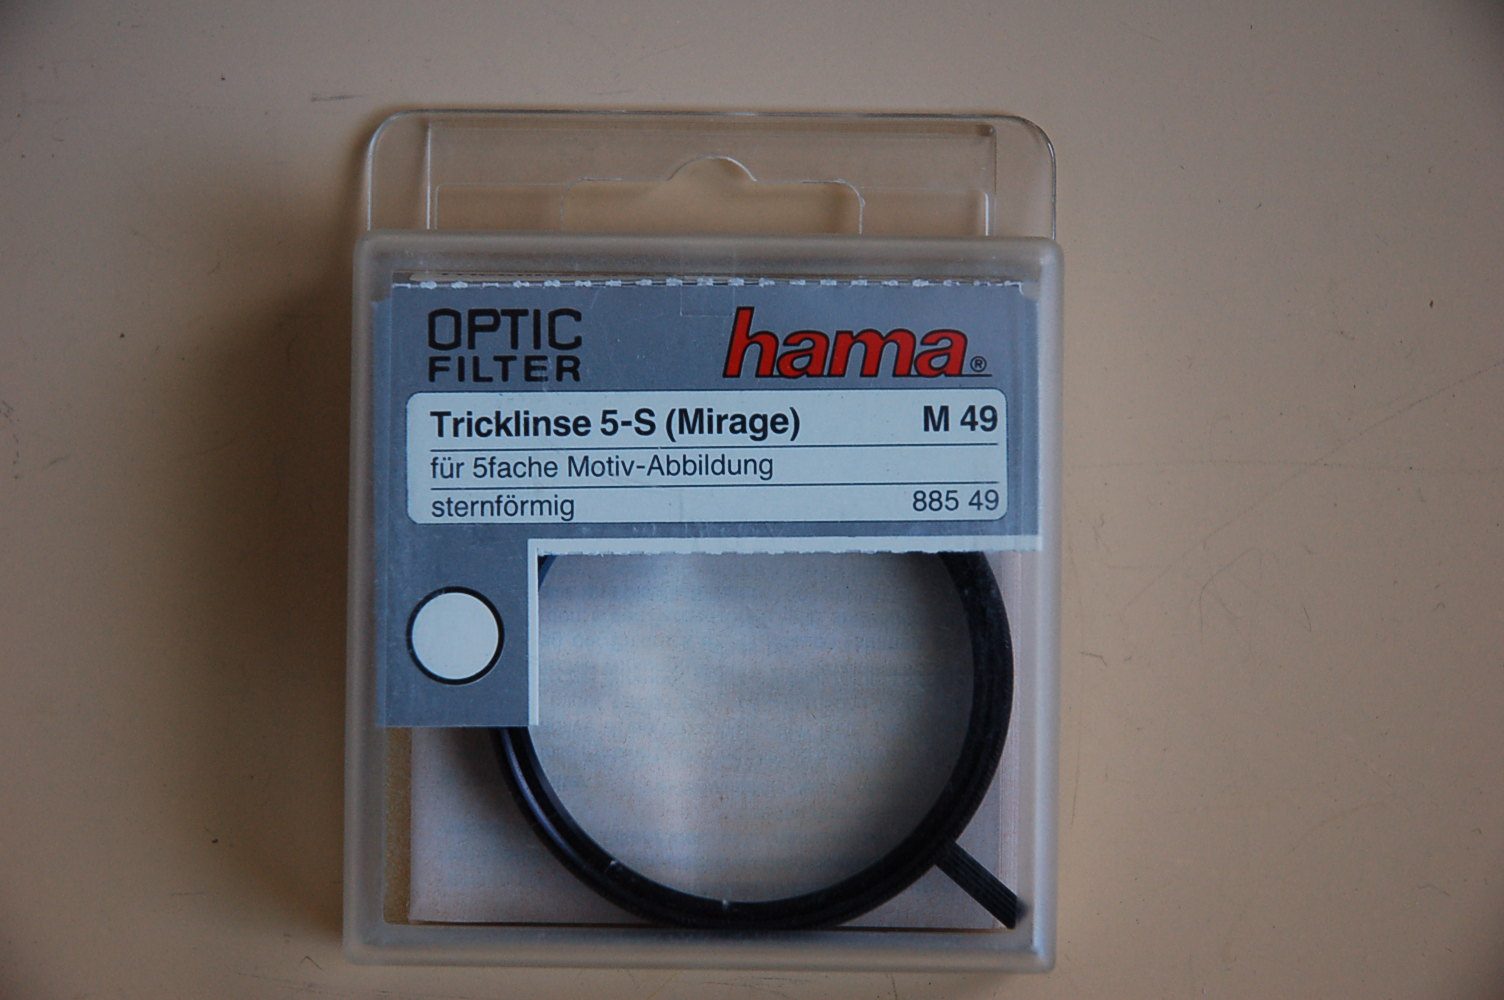 Hama Filter Tricklinse 5-S (Mirage) M49 #88549